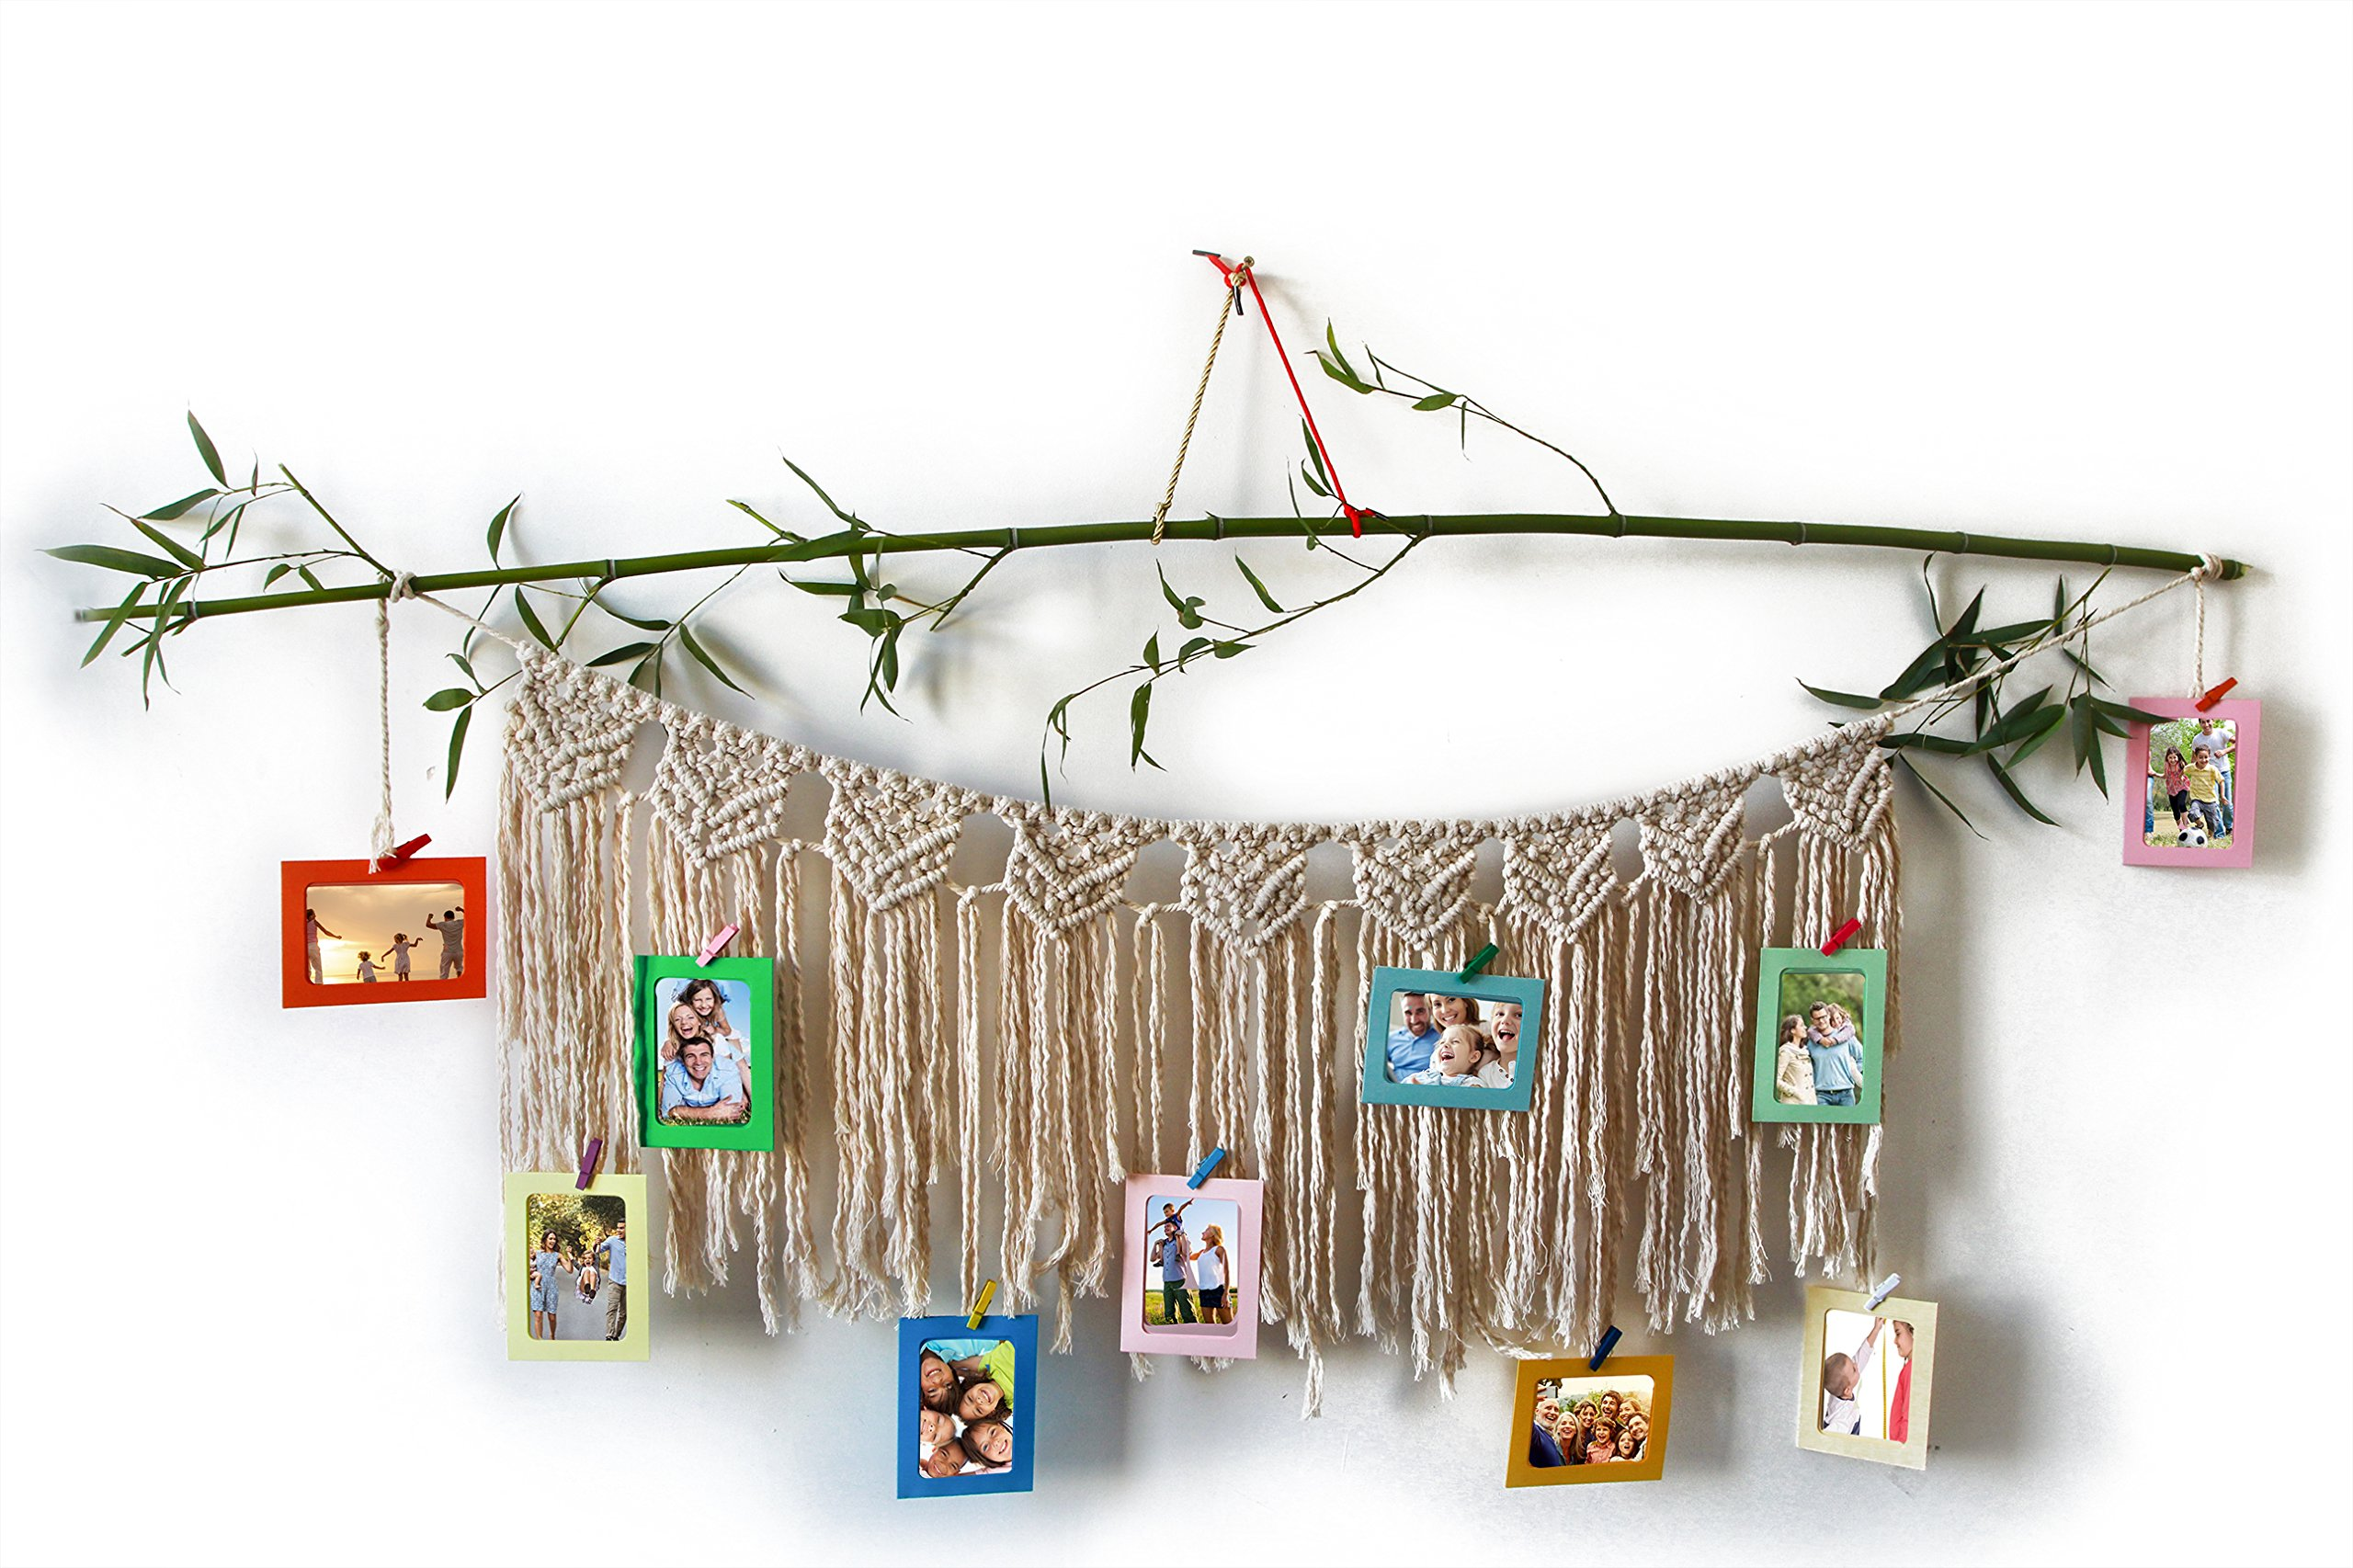 Macrame Wall Hanging Woven Tapestry With Photo Frames Organizer | 10 Colorful Wood Clips with 5 Inch Picture Display | Decorative Bohemian Drape Wall Furnishing Memory Holder | Family Moment Decor